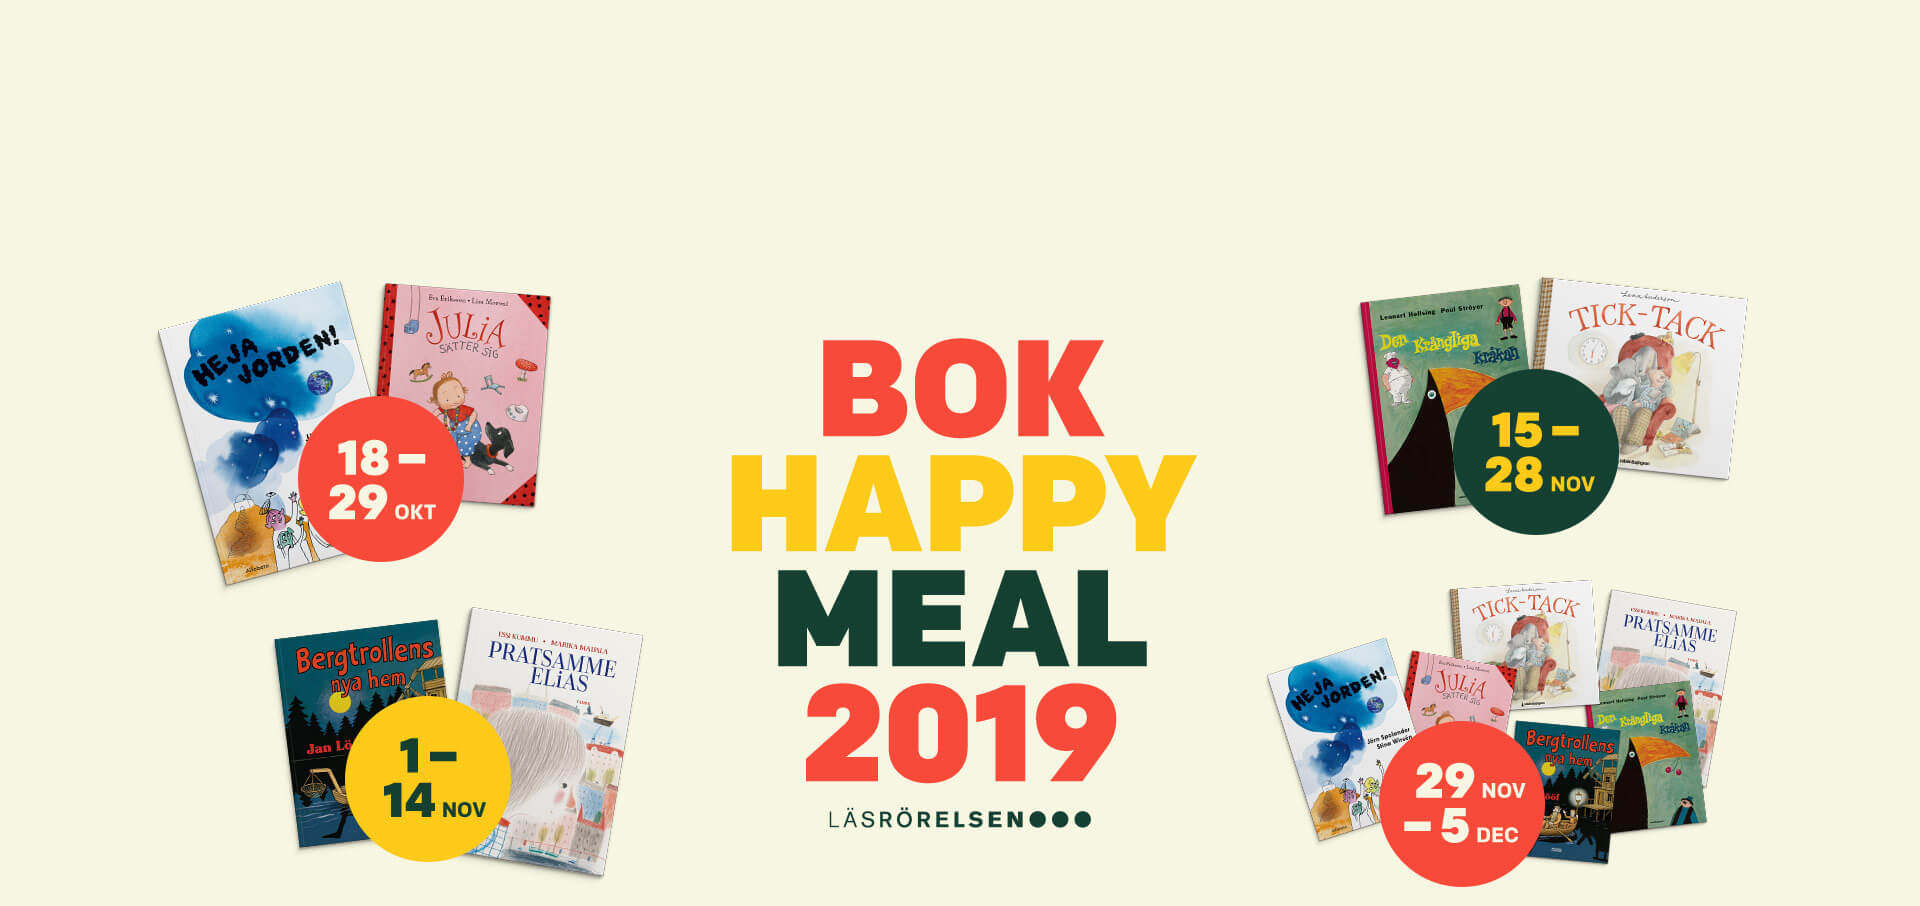 Bok Happy Meal